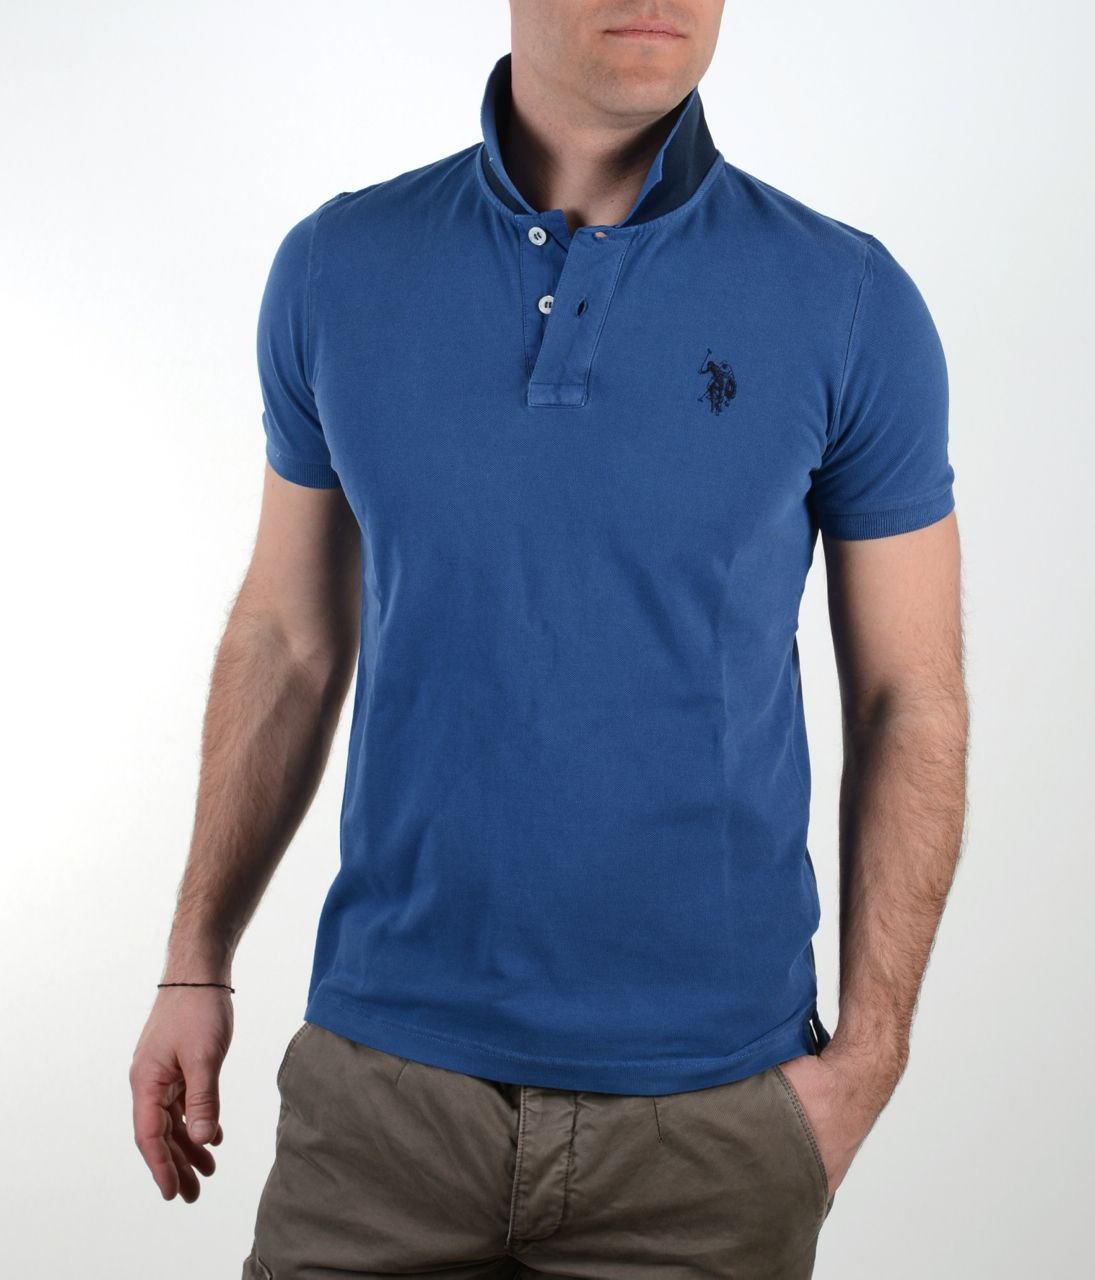 Poloshow u.s. polo assn. Polo on body – 22059